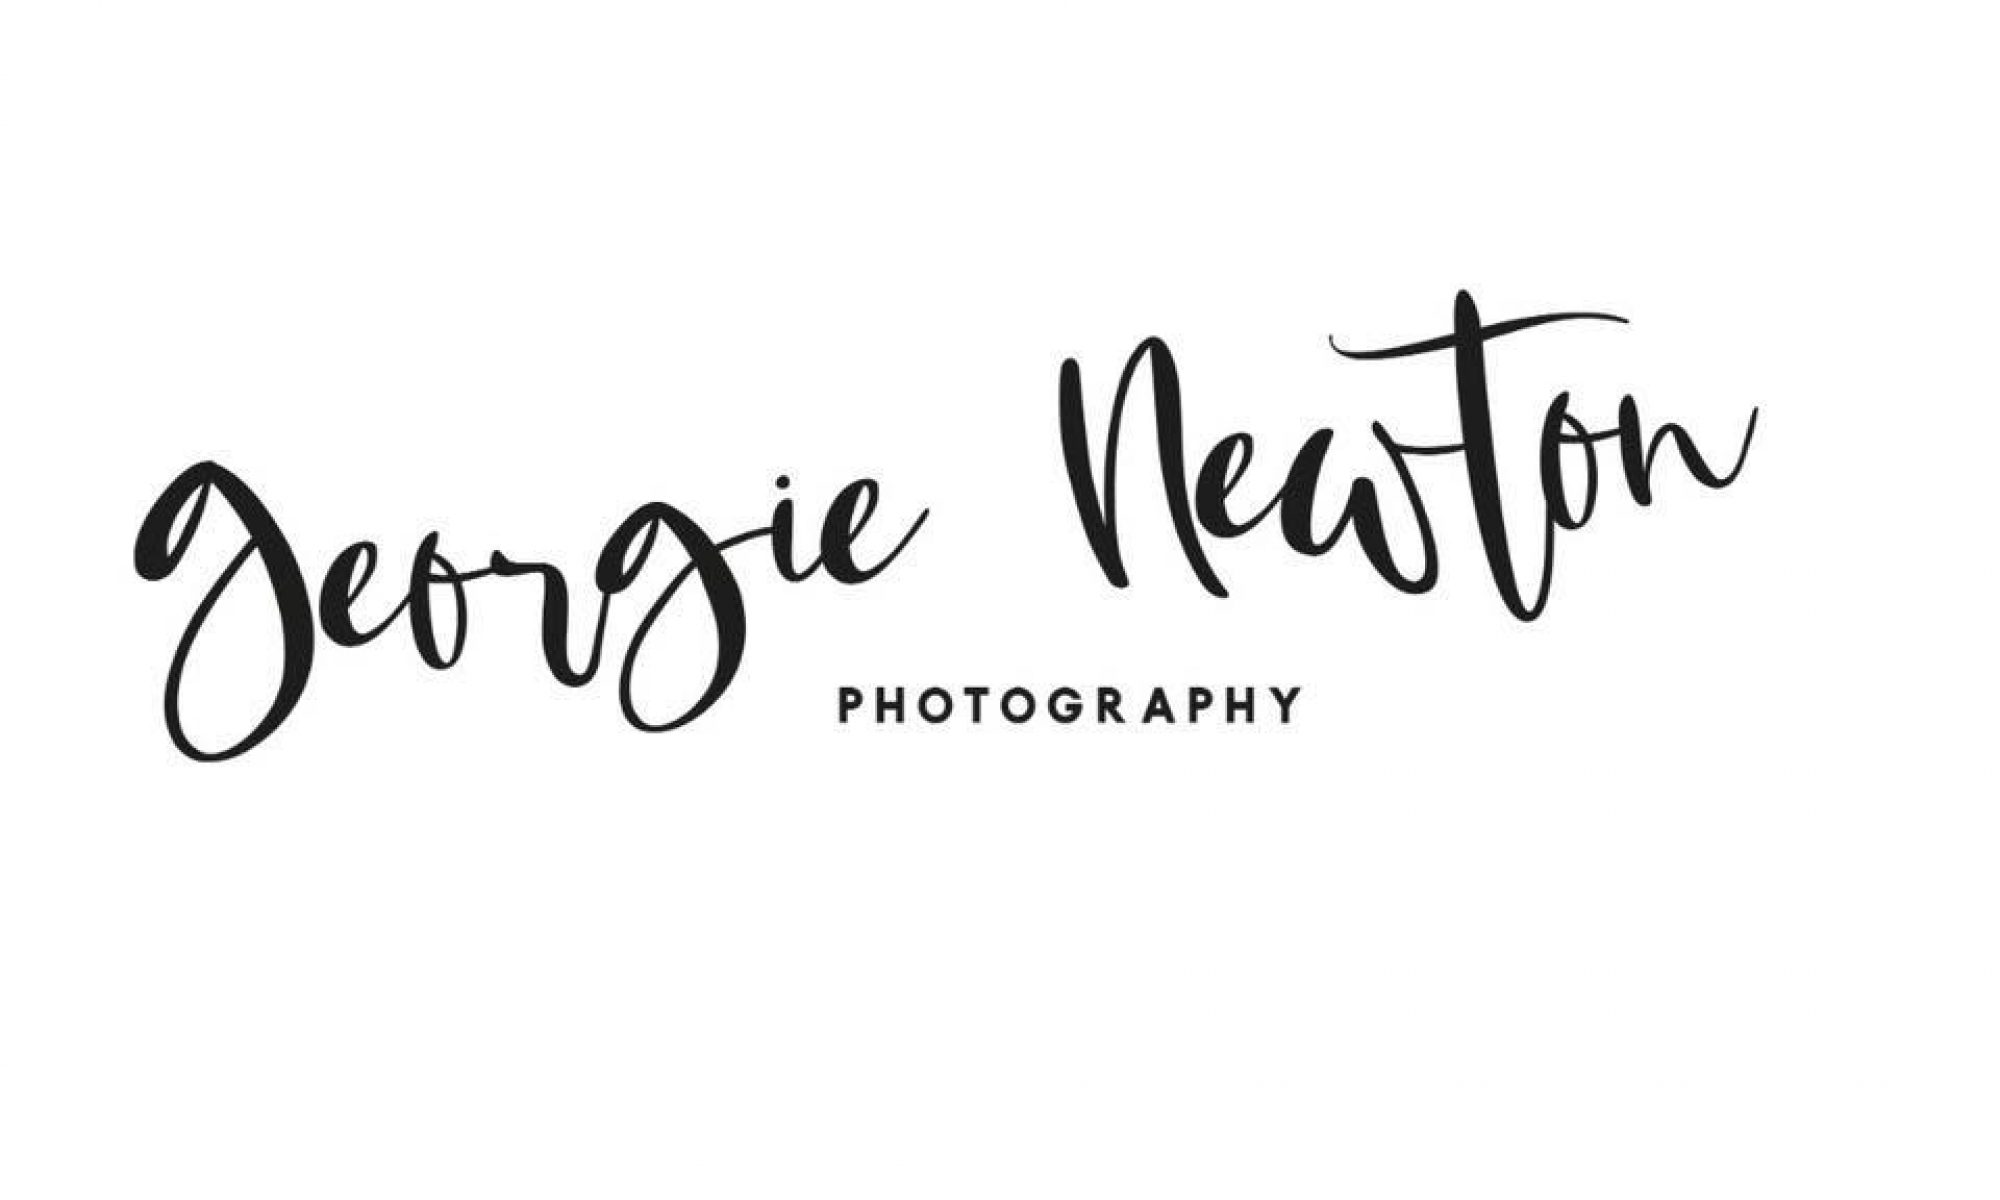 Georgie Newton Photography